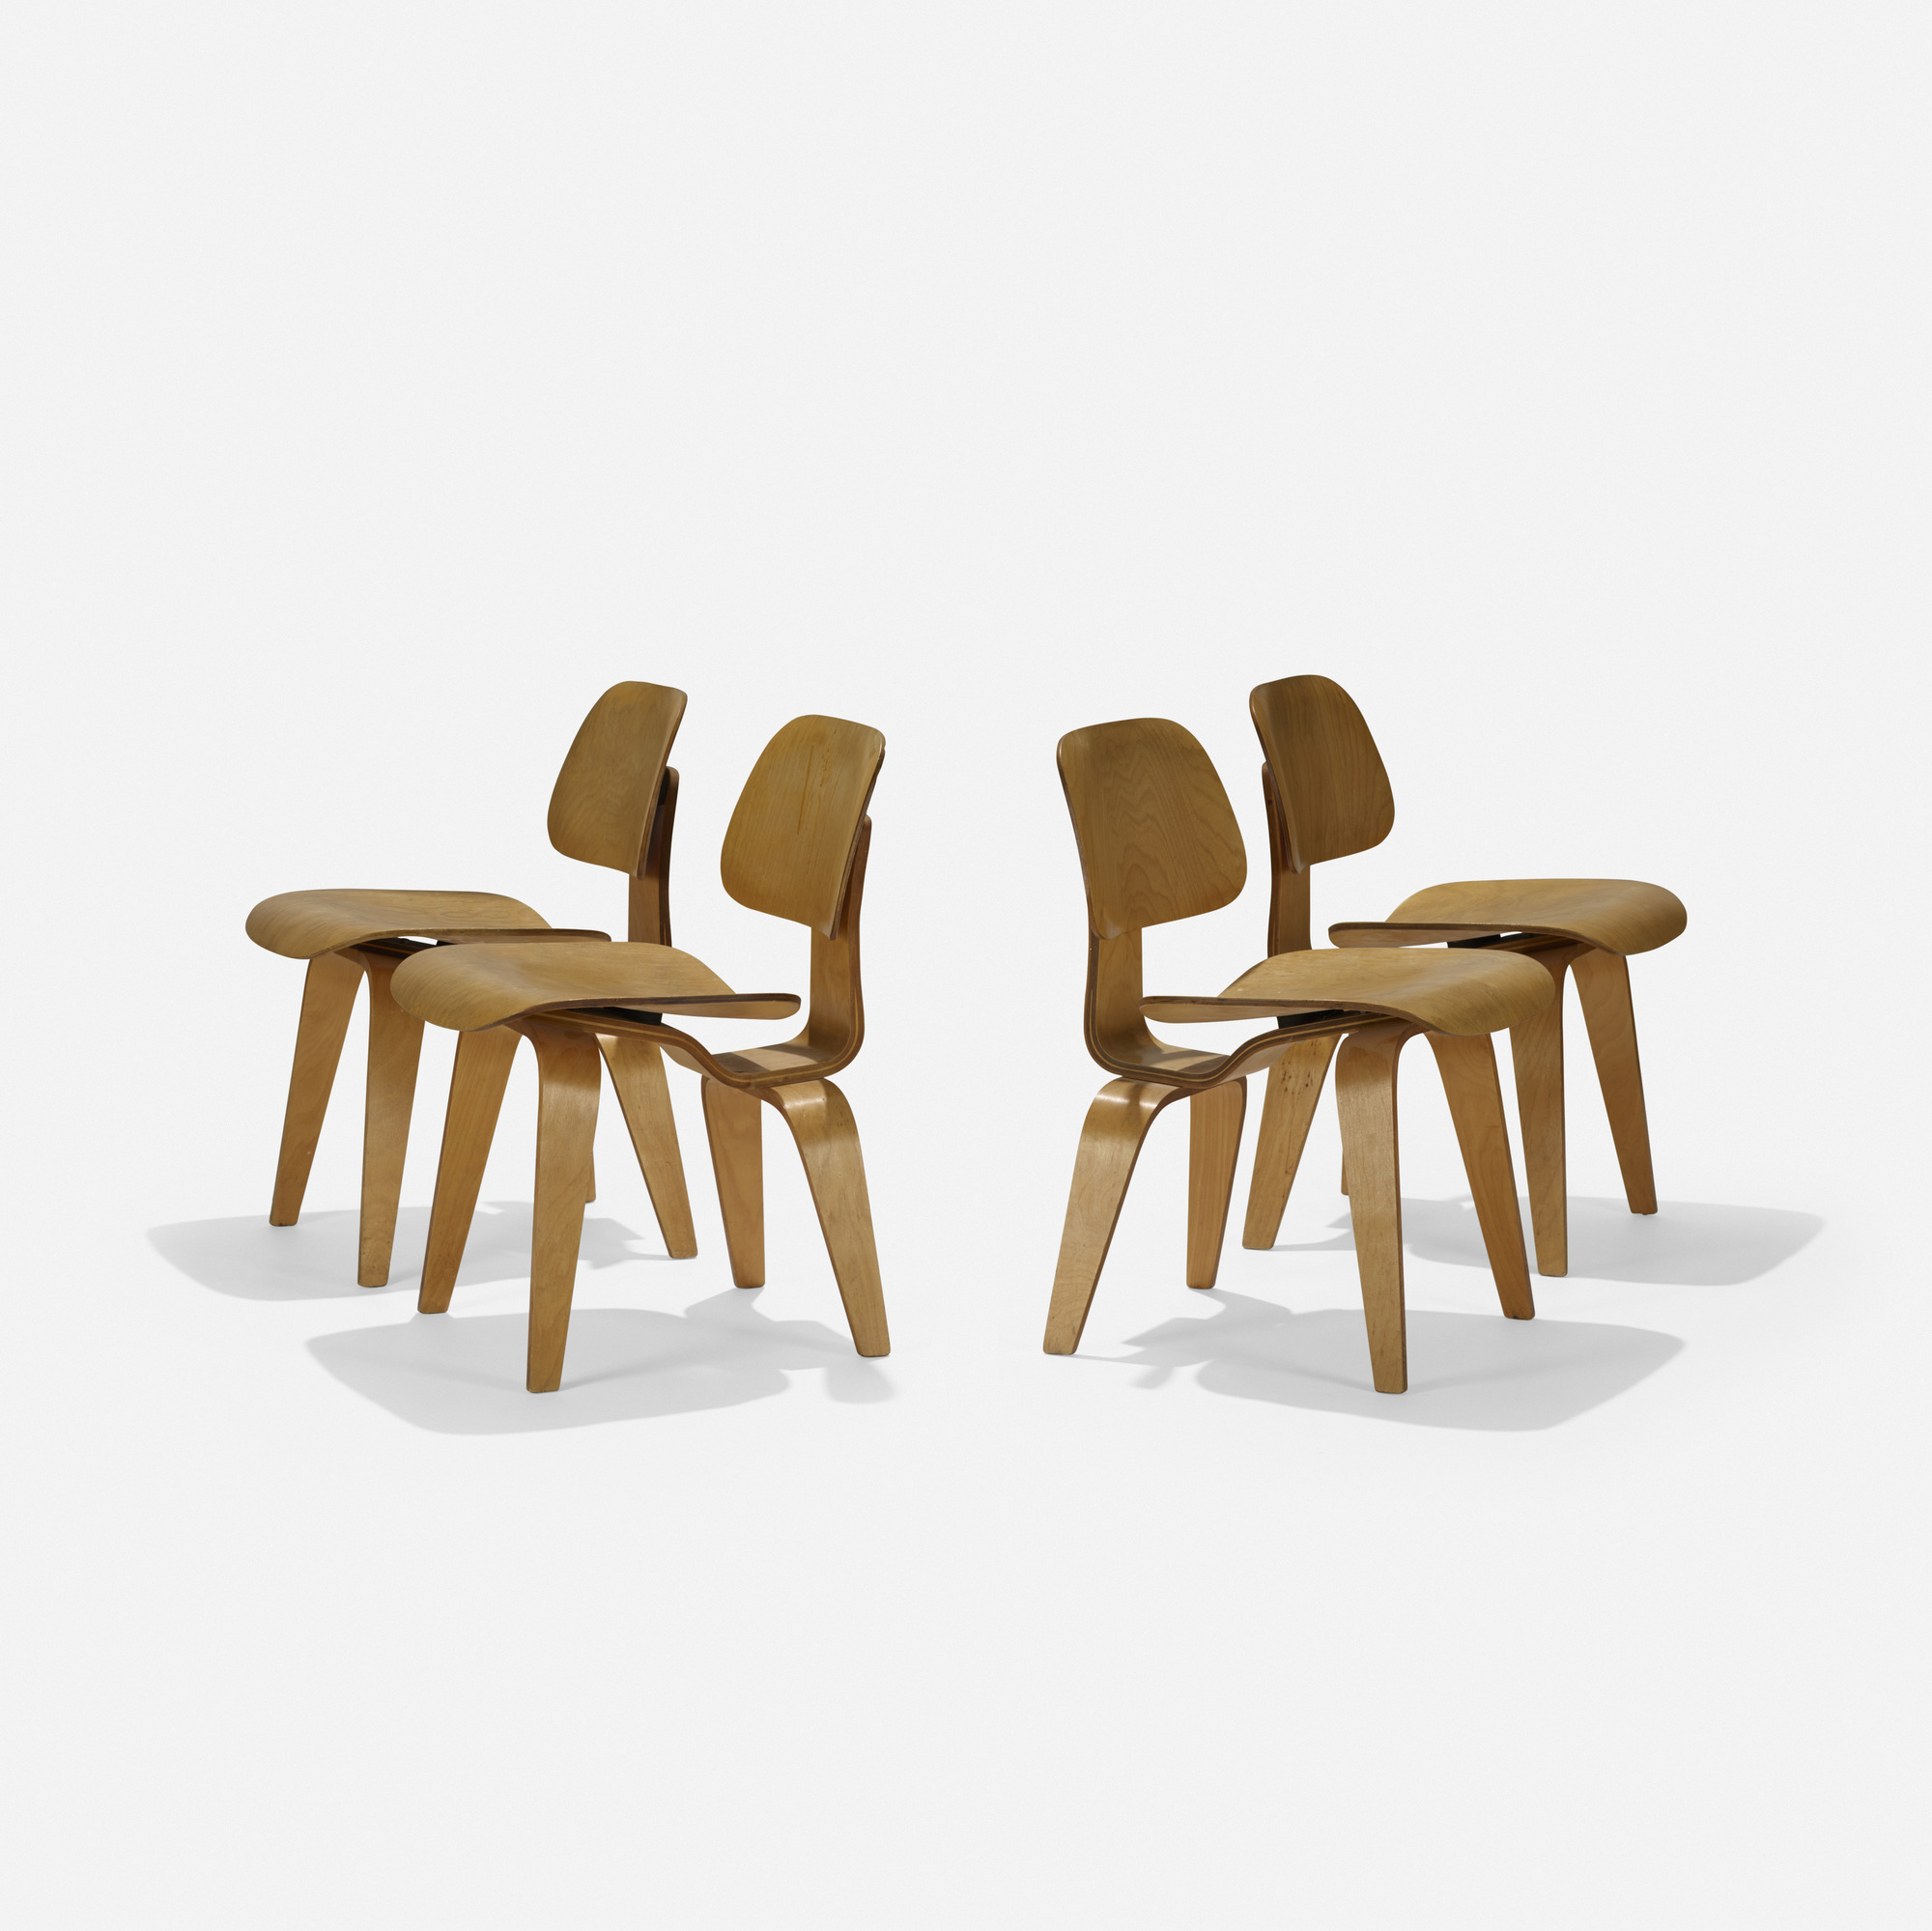 145: Charles and Ray Eames / DCWs, set of four (2 of 4)